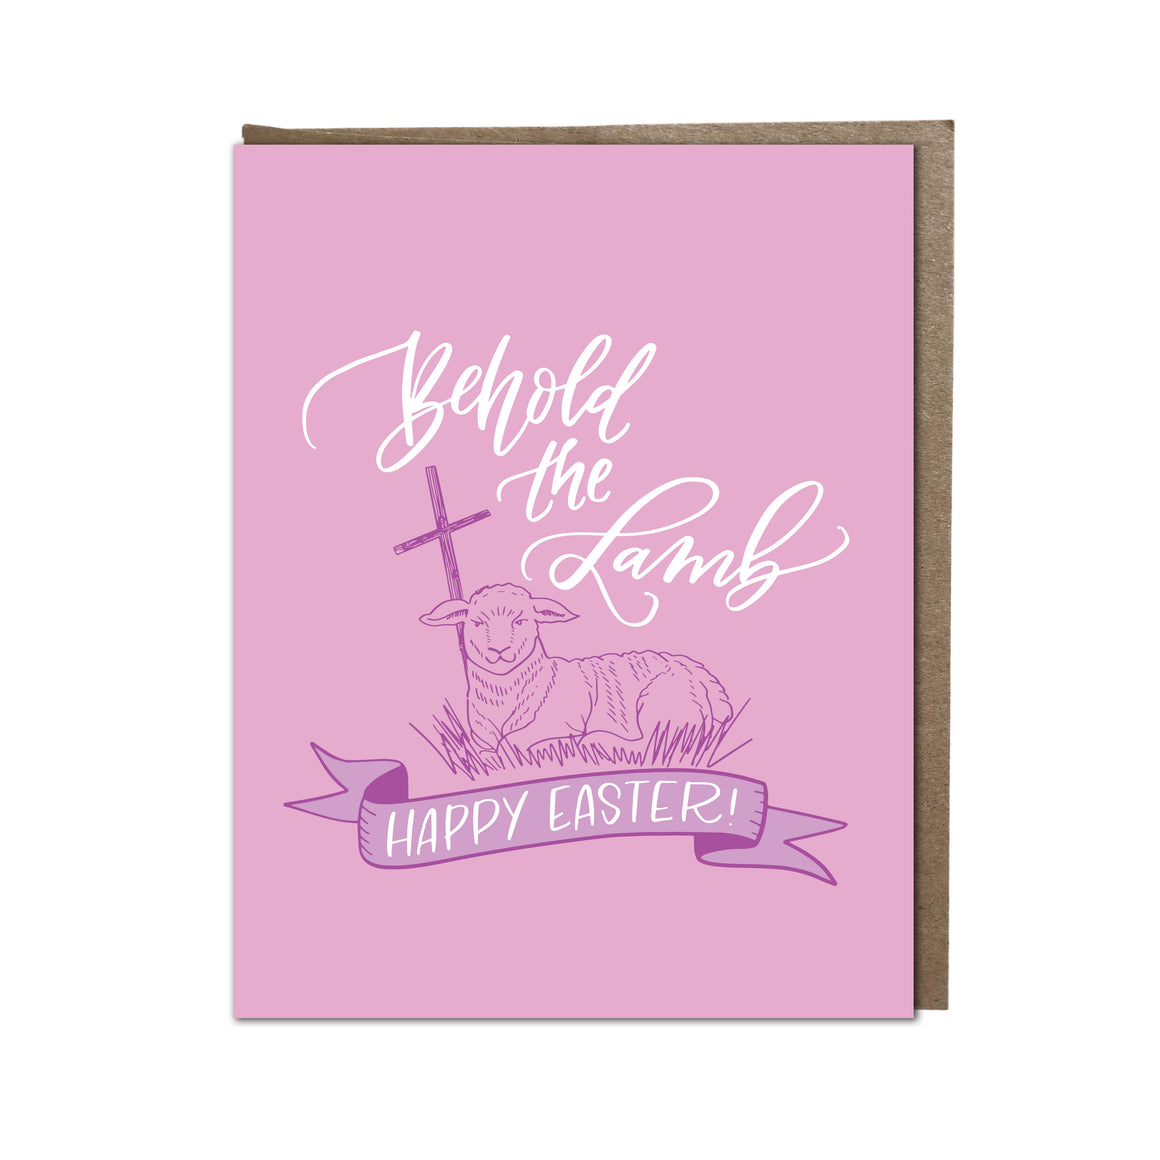 """Behold the Lamb"" card"